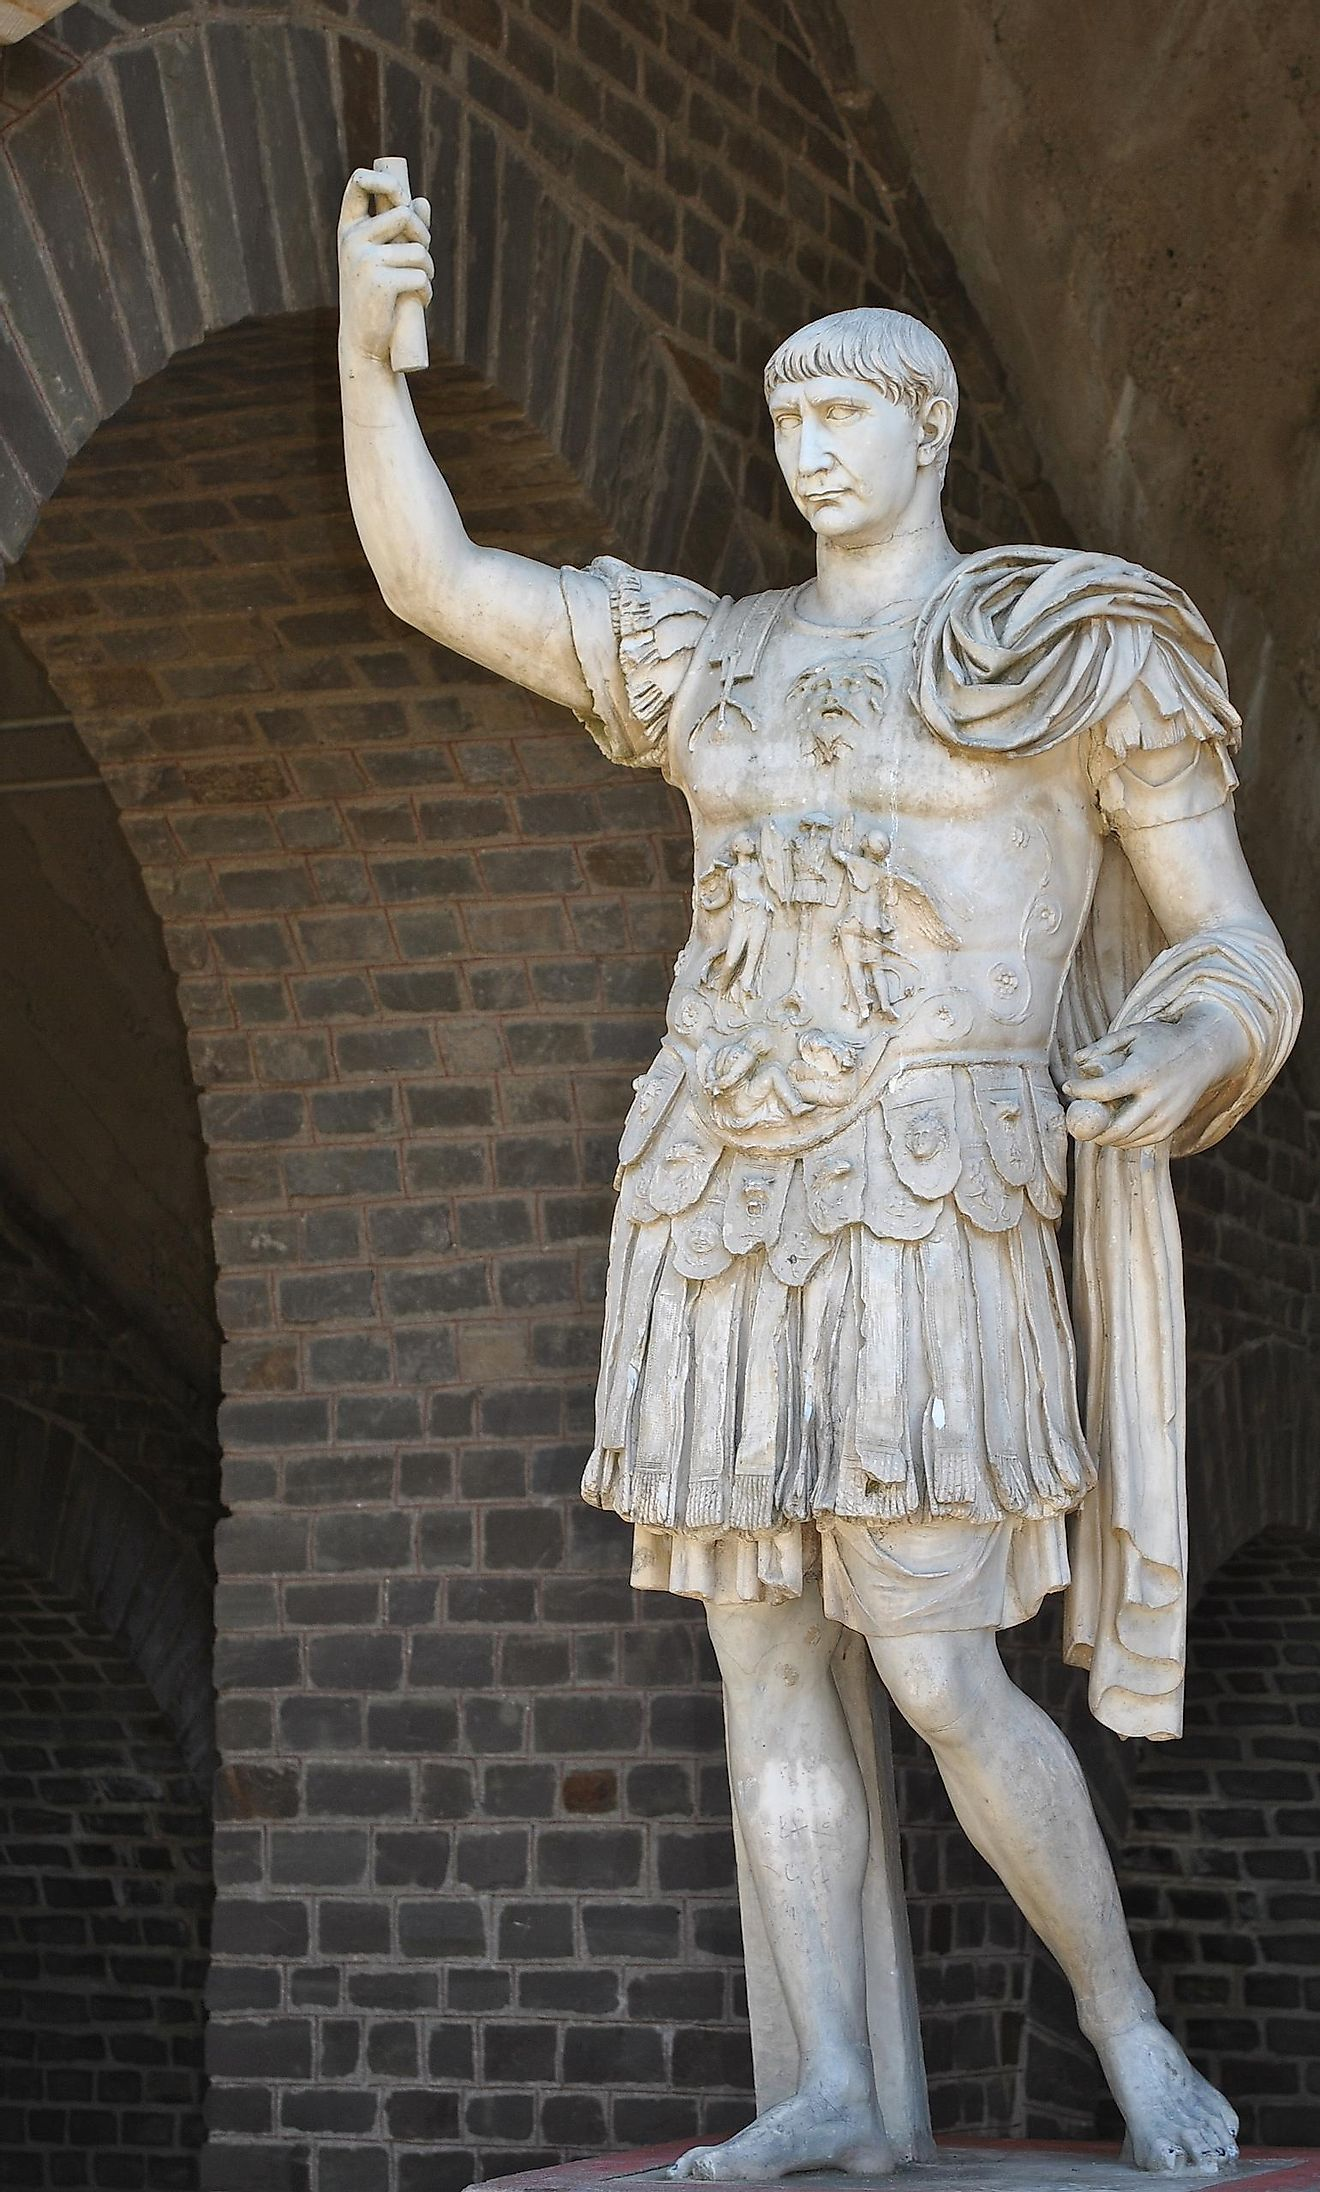 Statue of Trajan, posing in military garb, in front of the Amphitheater of Colonia Ulpia Traiana in the Xanten Archaeological Park. Image credit: Hartmann Linge/Wikimedia.org